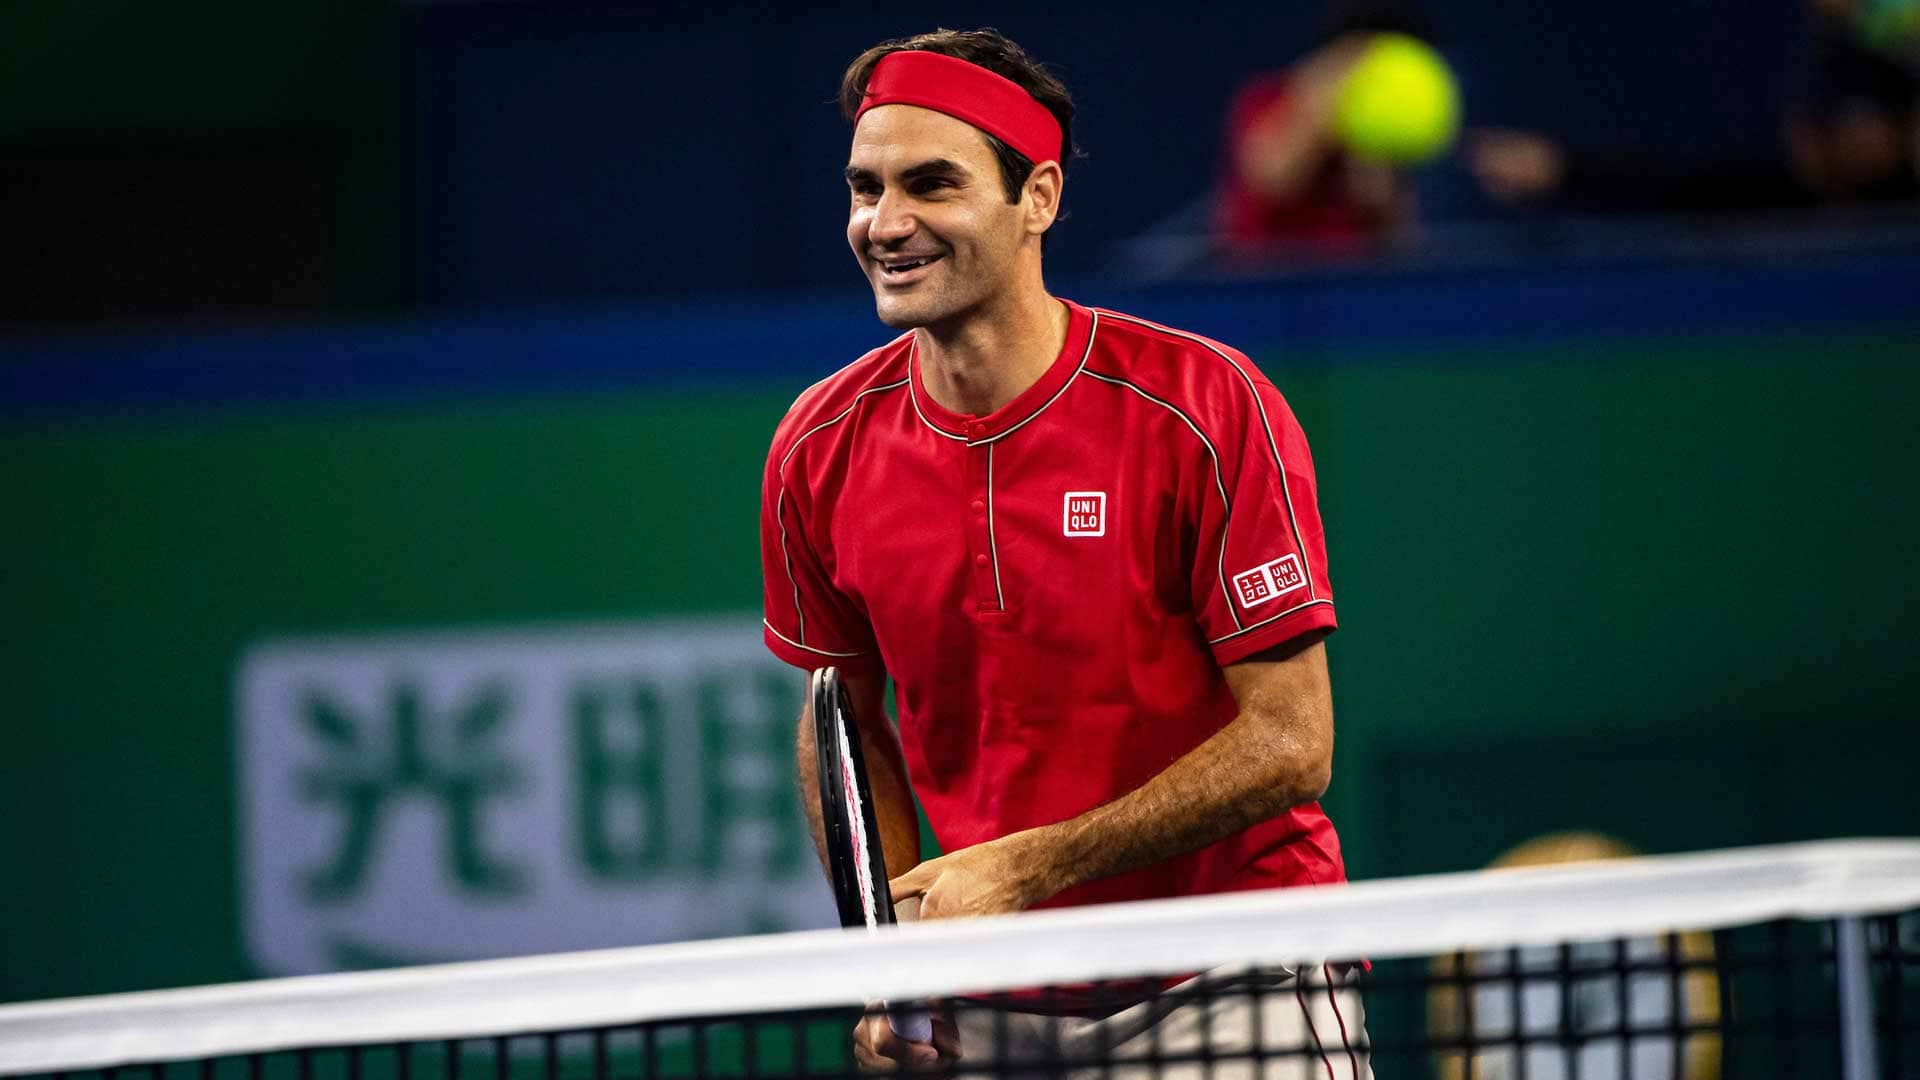 Roger Federer reacts in Shanghai 2019